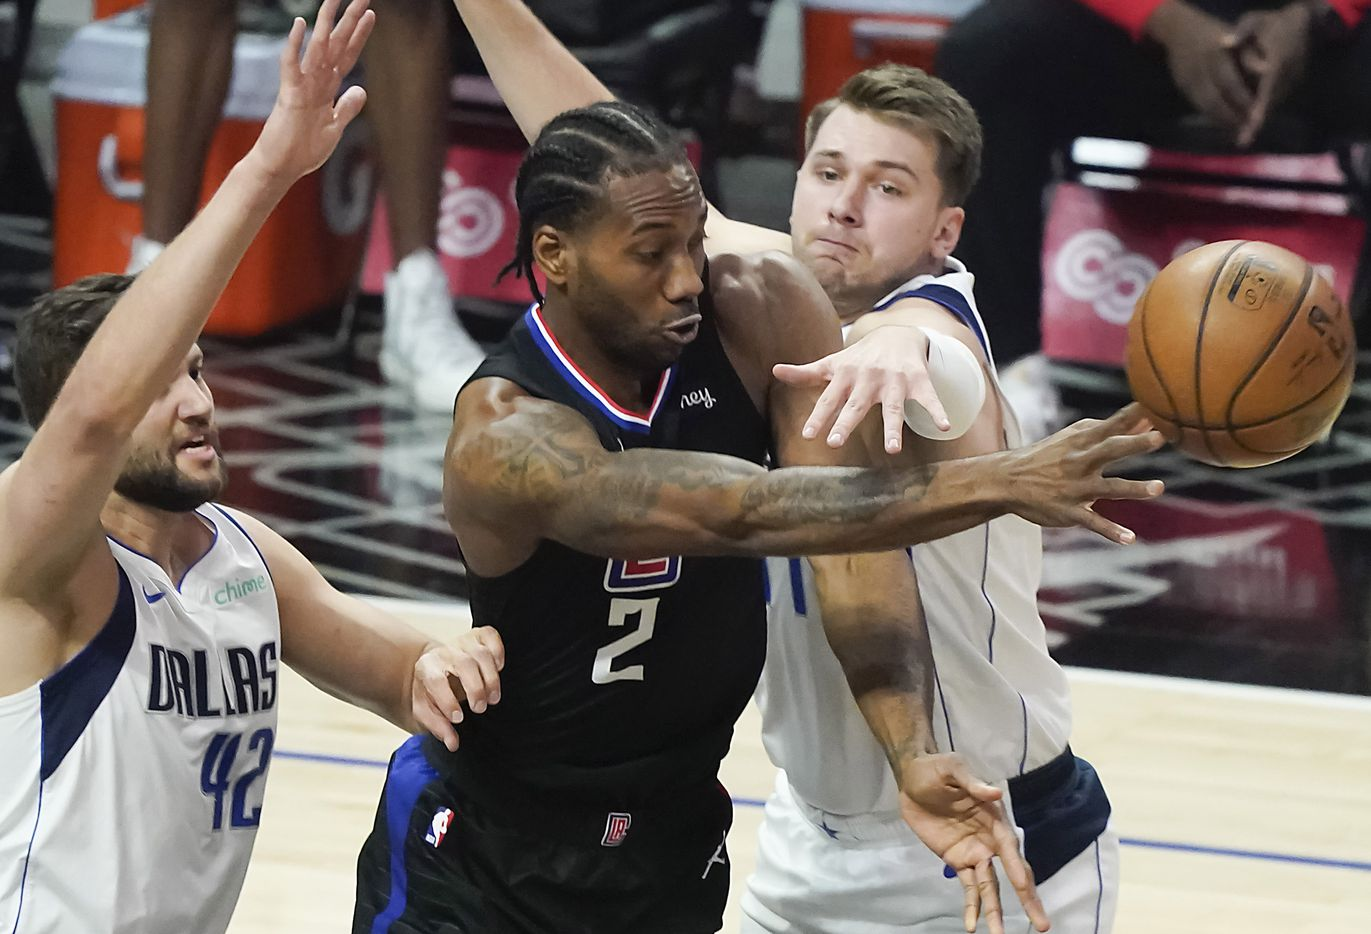 Dallas Mavericks guard Luka Doncic (77) and forward Maxi Kleber (42) defend against LA Clippers forward Kawhi Leonard (2) during the first half of an NBA playoff basketball game at Staples Center on Tuesday, May 25, 2021, in Los Angeles.